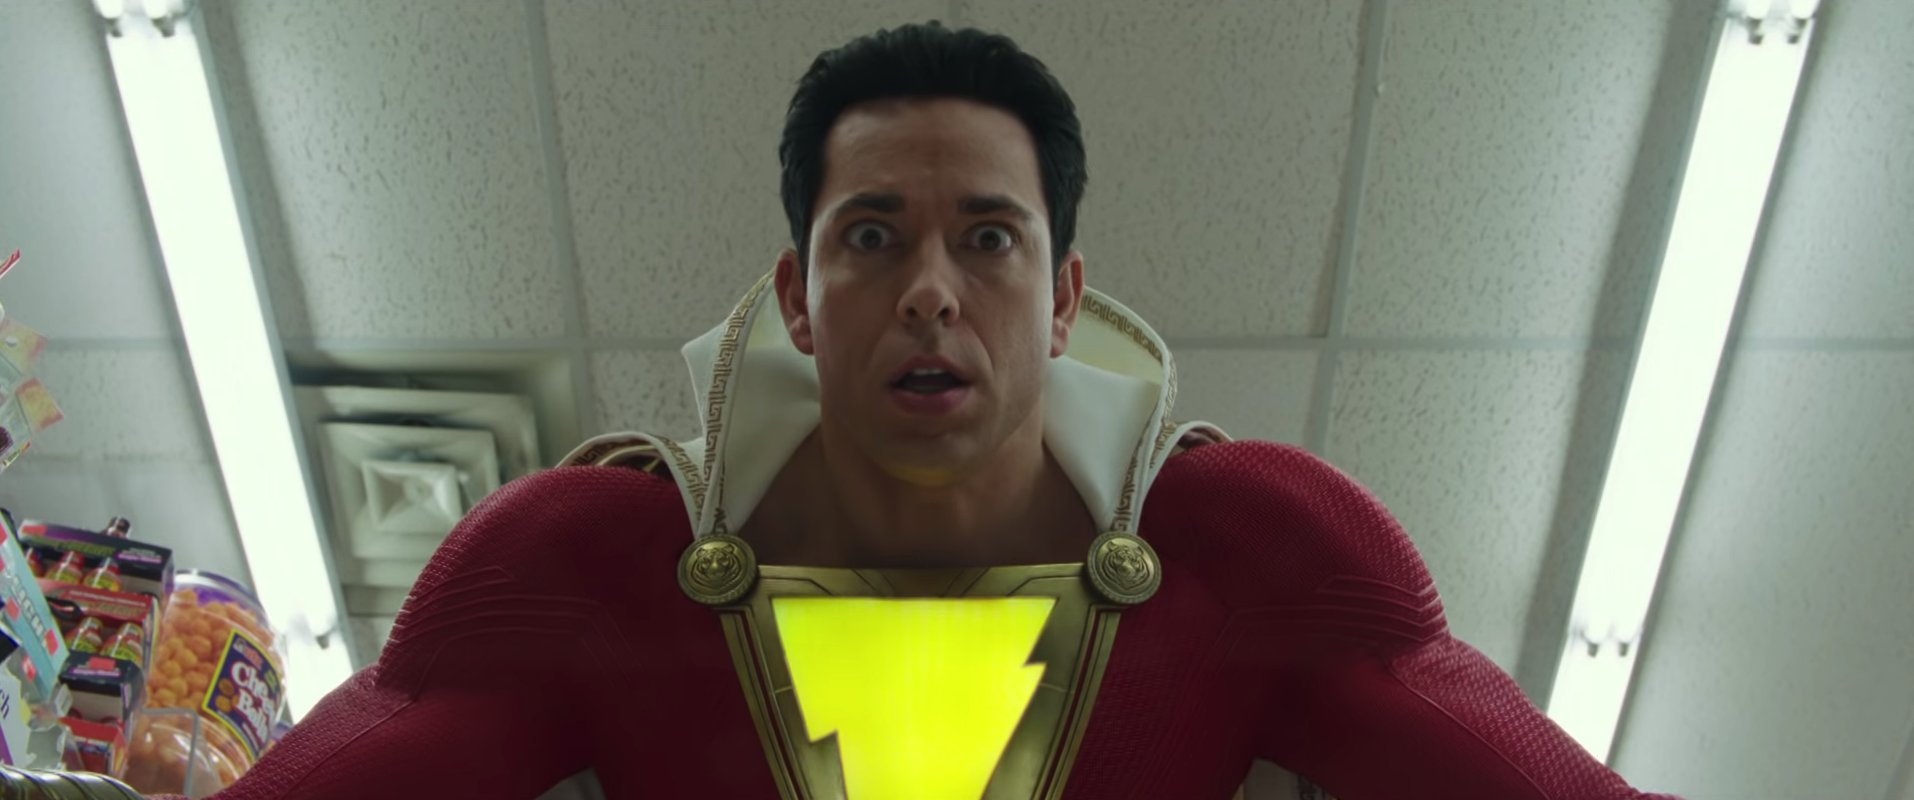 #SHAZAM! official teaser trailer is finally here! https://t.co/5J64EVmhJQ